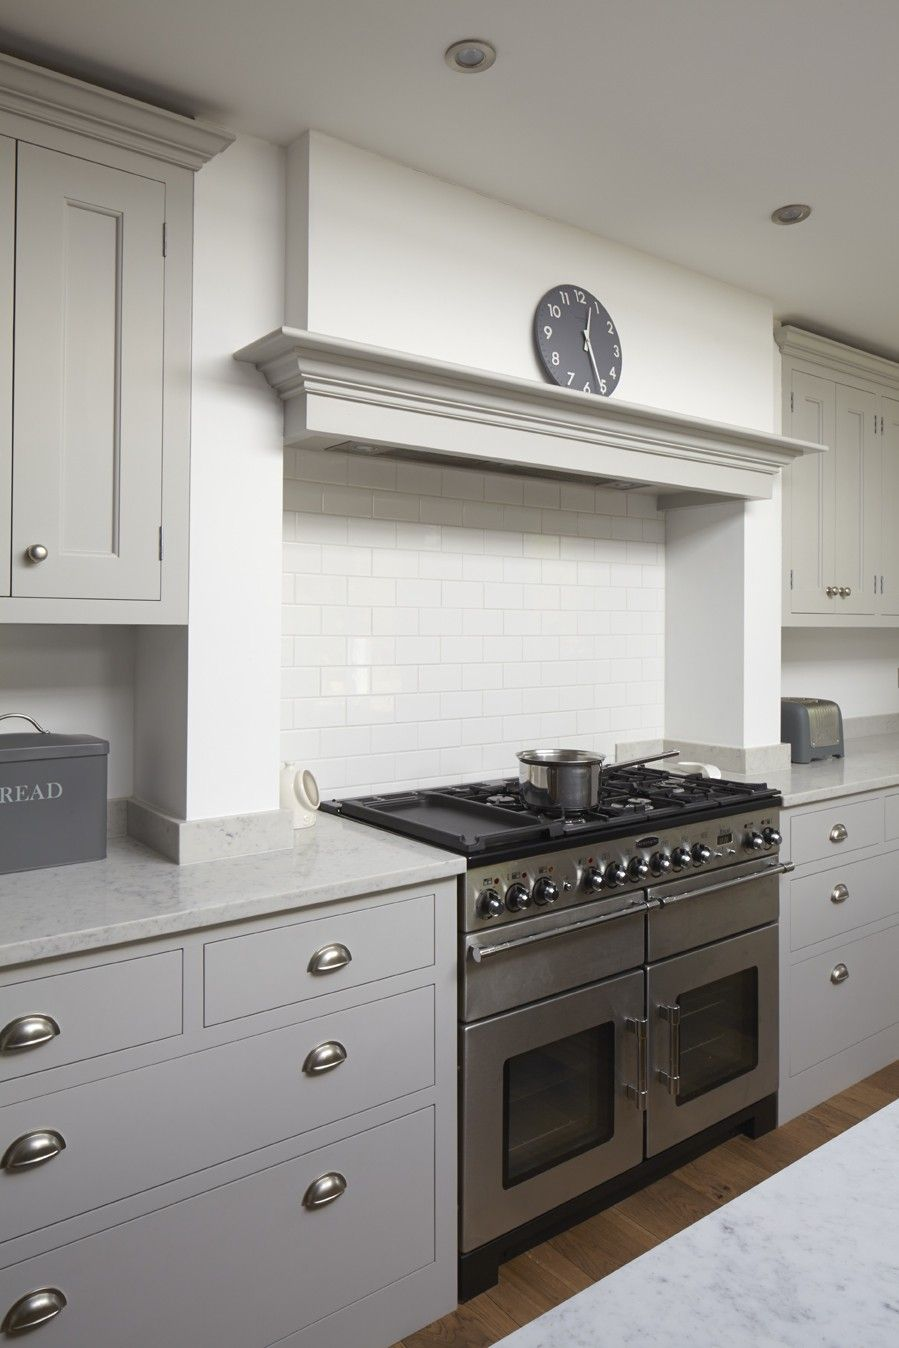 Hinchley Wood Surrey Traditional Kitchen In 2020 Kitchen Cooker Kitchen Chimney Kitchen Canopy